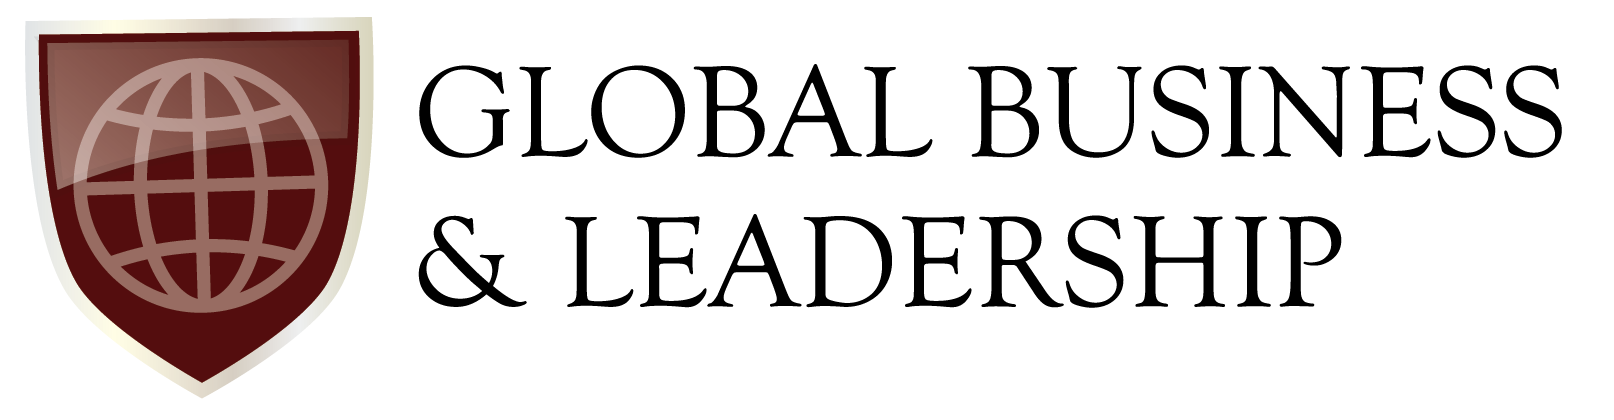 Global Business & Leadership